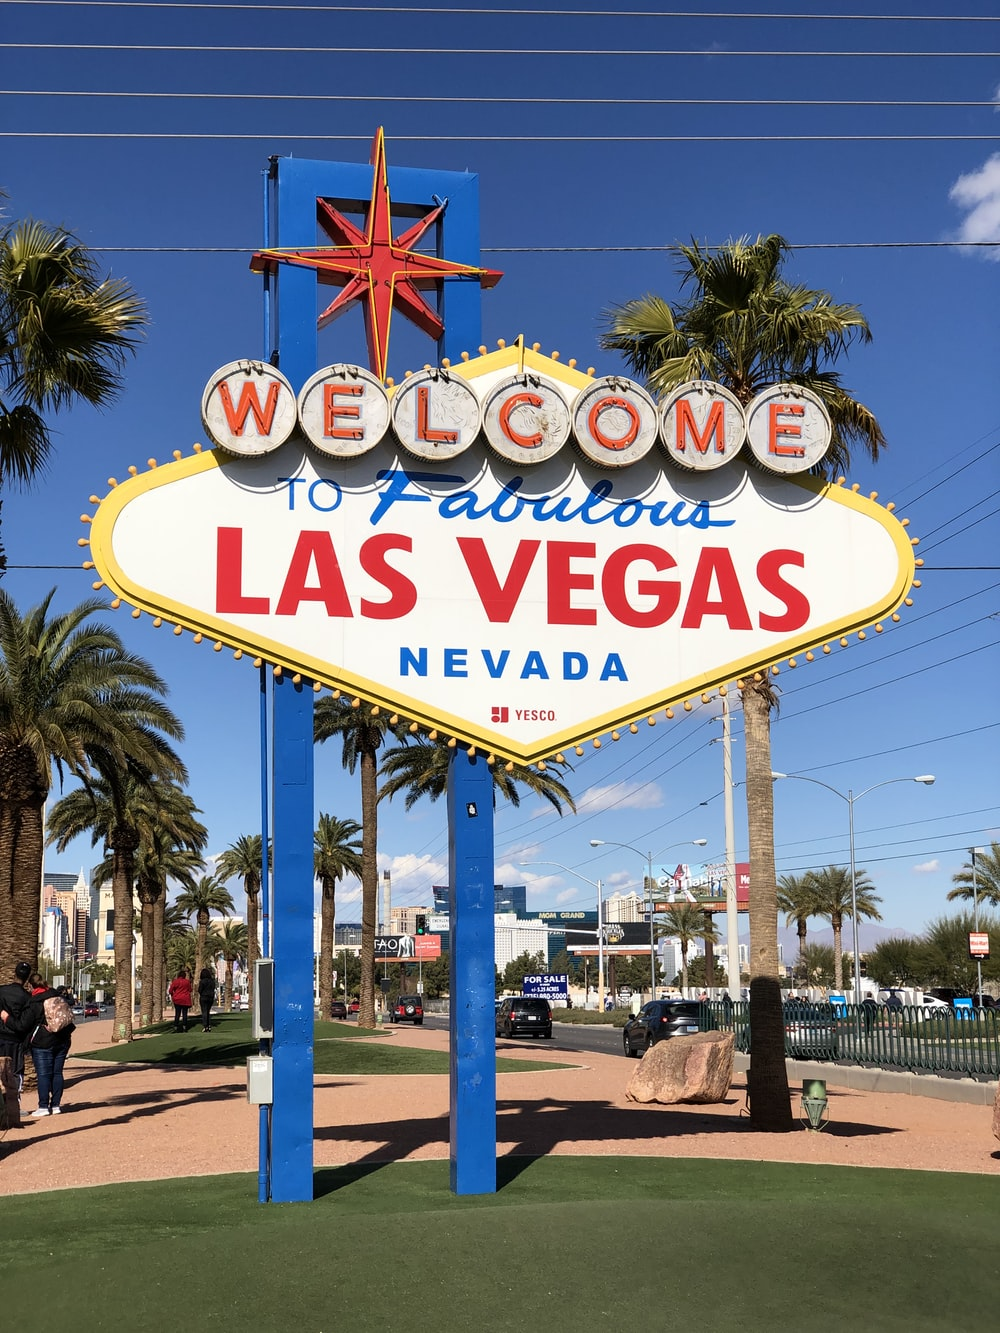 Welcome to Fabulous Las Vegas Nevada signboard during daytime